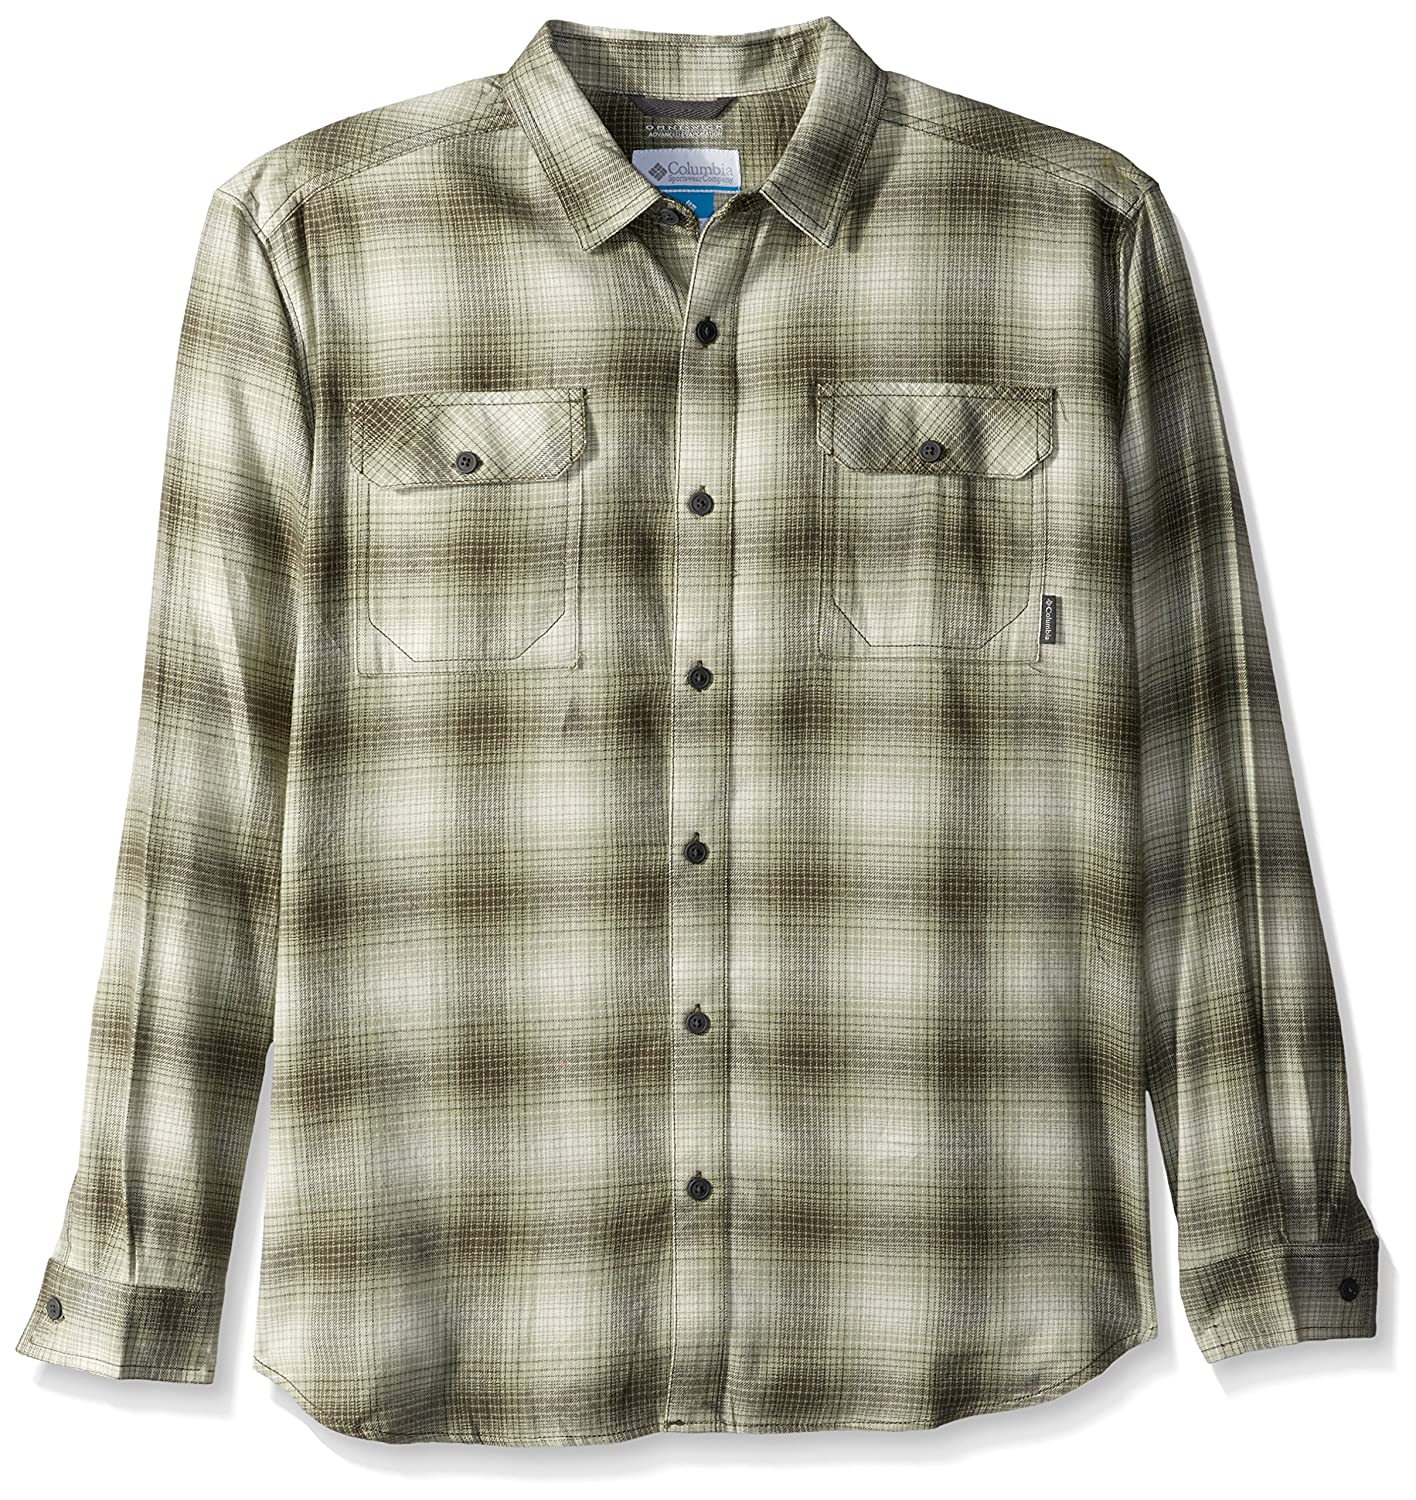 f6ad2aaceb6 Columbia Men's Flare Gun Flannel III Long Sleeve Shirt at Amazon Men's  Clothing store: